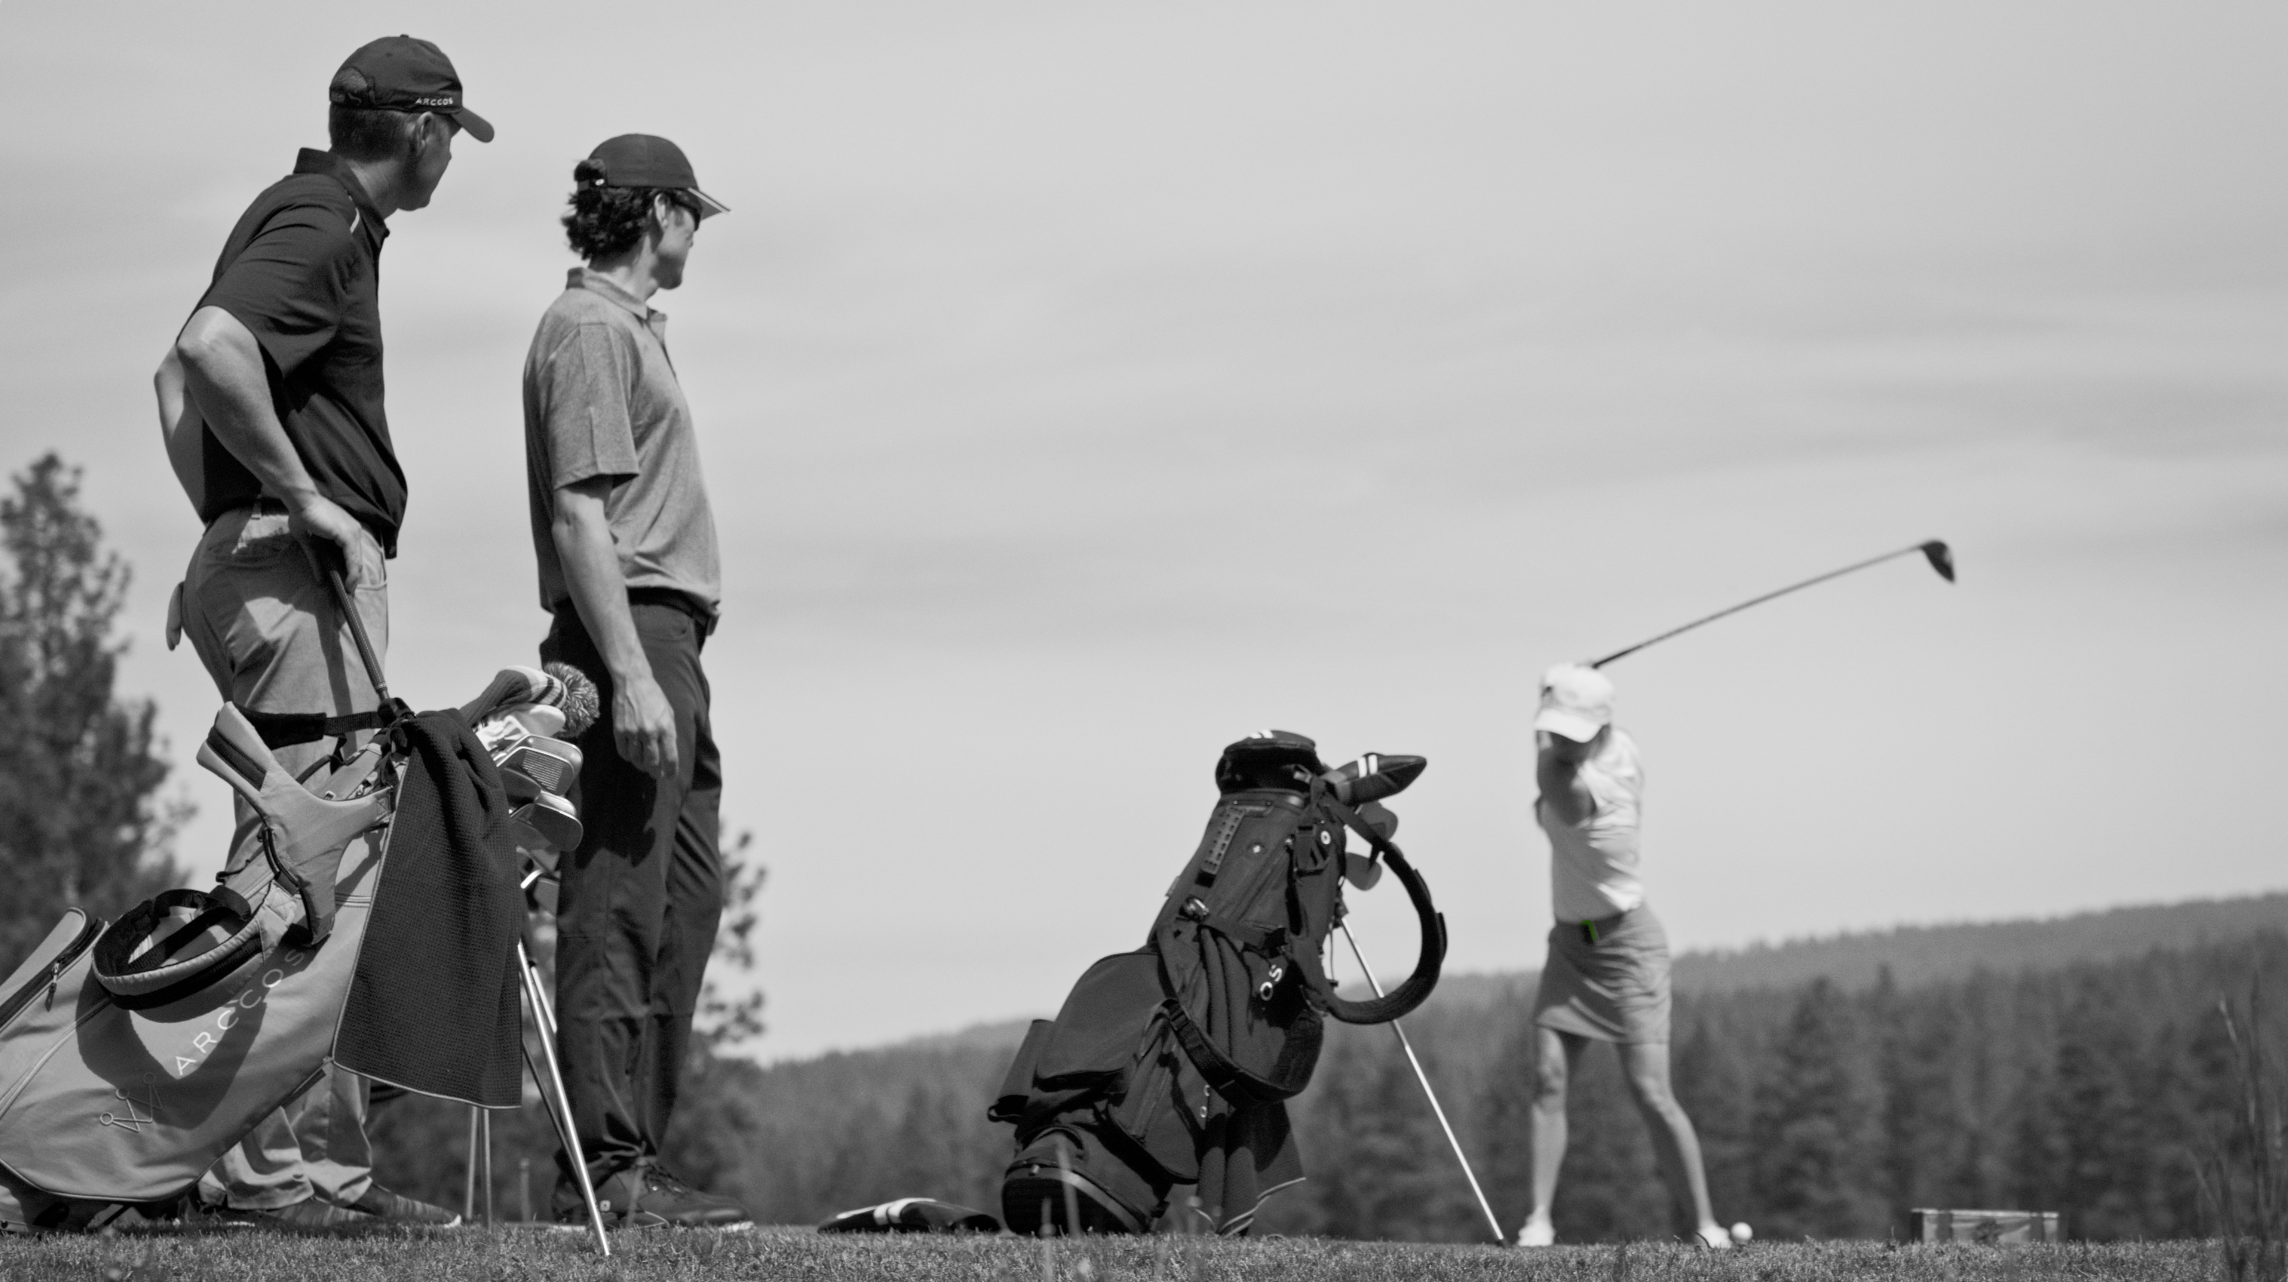 Black & White Image of 3 Golfers